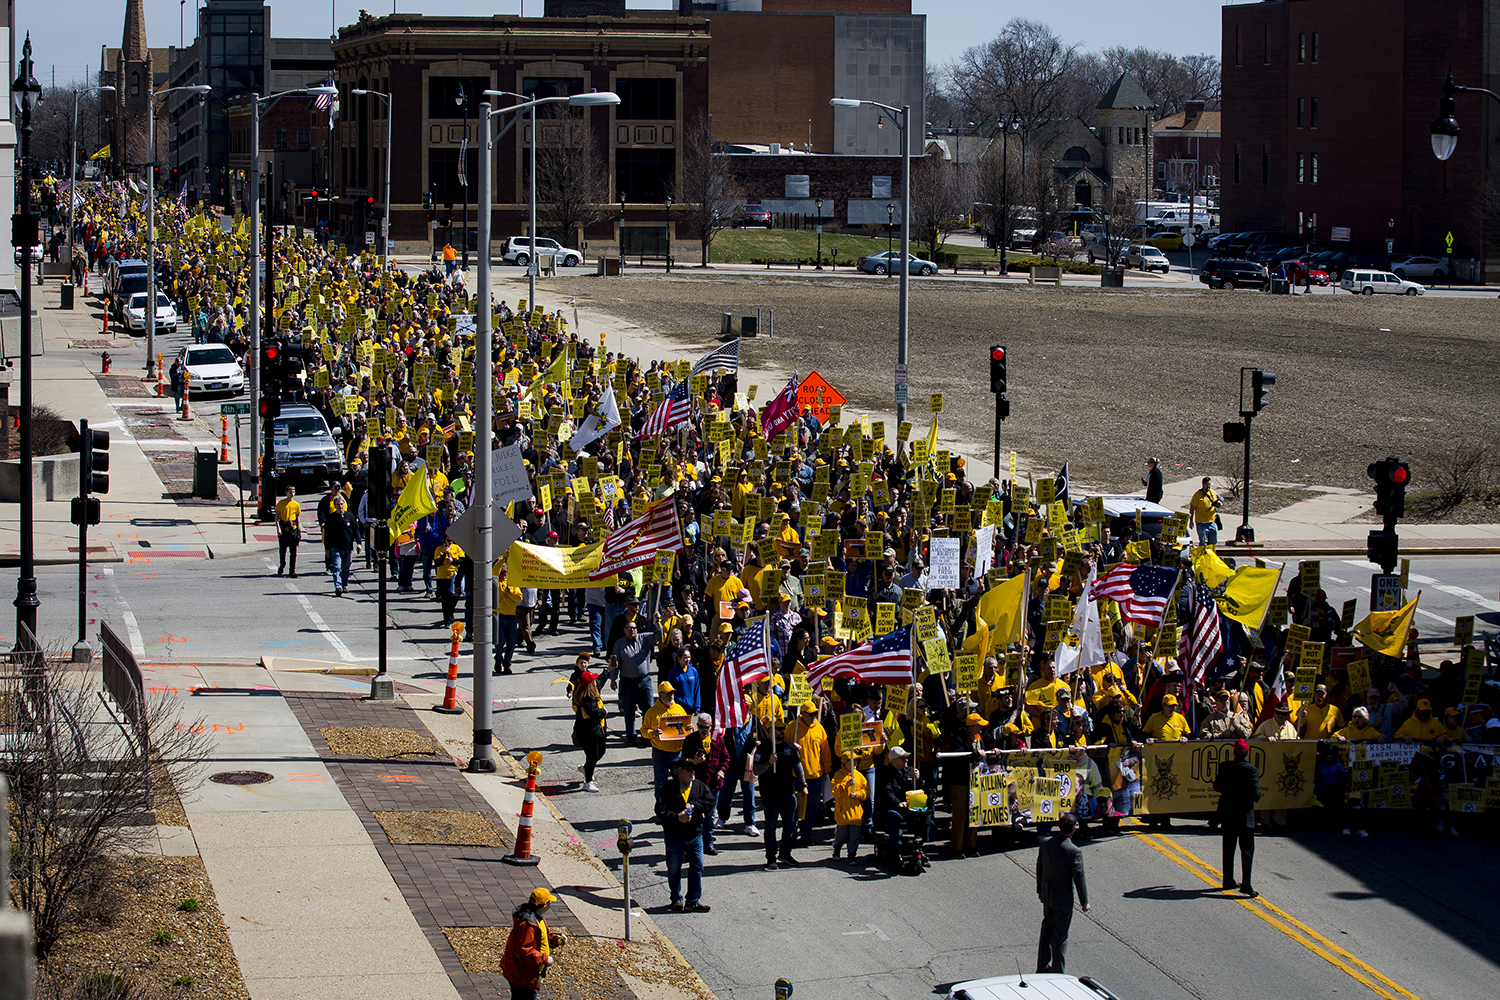 Gun rights advocates walk in the Illinois State Rifle Association's annual gun owner's lobby day (IGOLD) march to the Capitol Wednesday, March 27, 2019 in Springfield, Ill. [Rich Saal/The State Journal-Register]